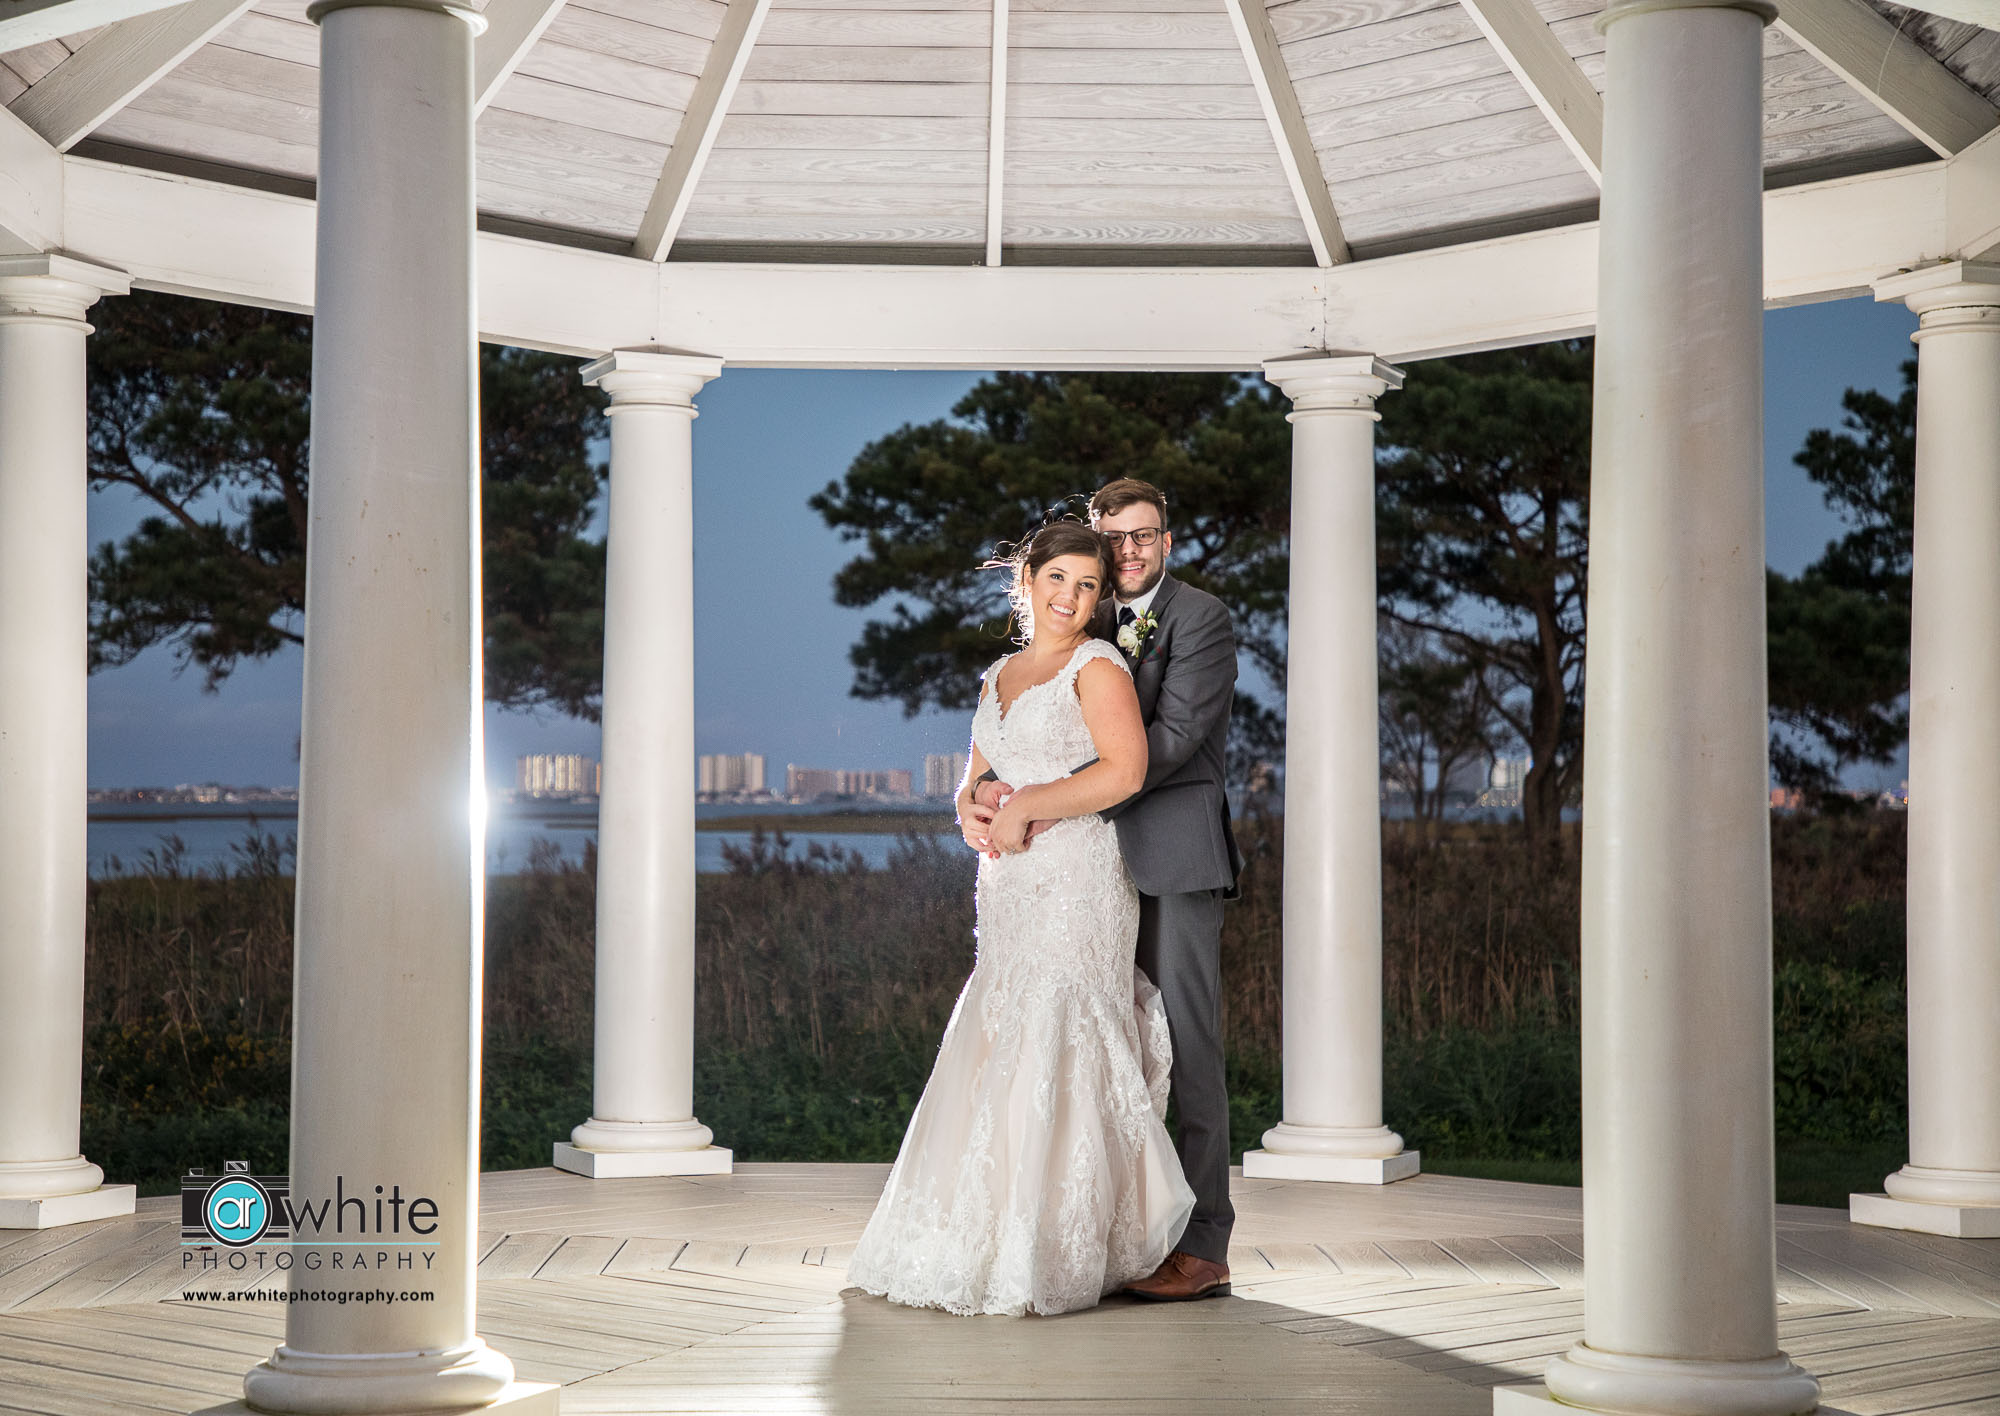 We were able to sneak away during the reception for a couple quick photos at twilight in the gazebo. I love how visible Ocean City is in the background.